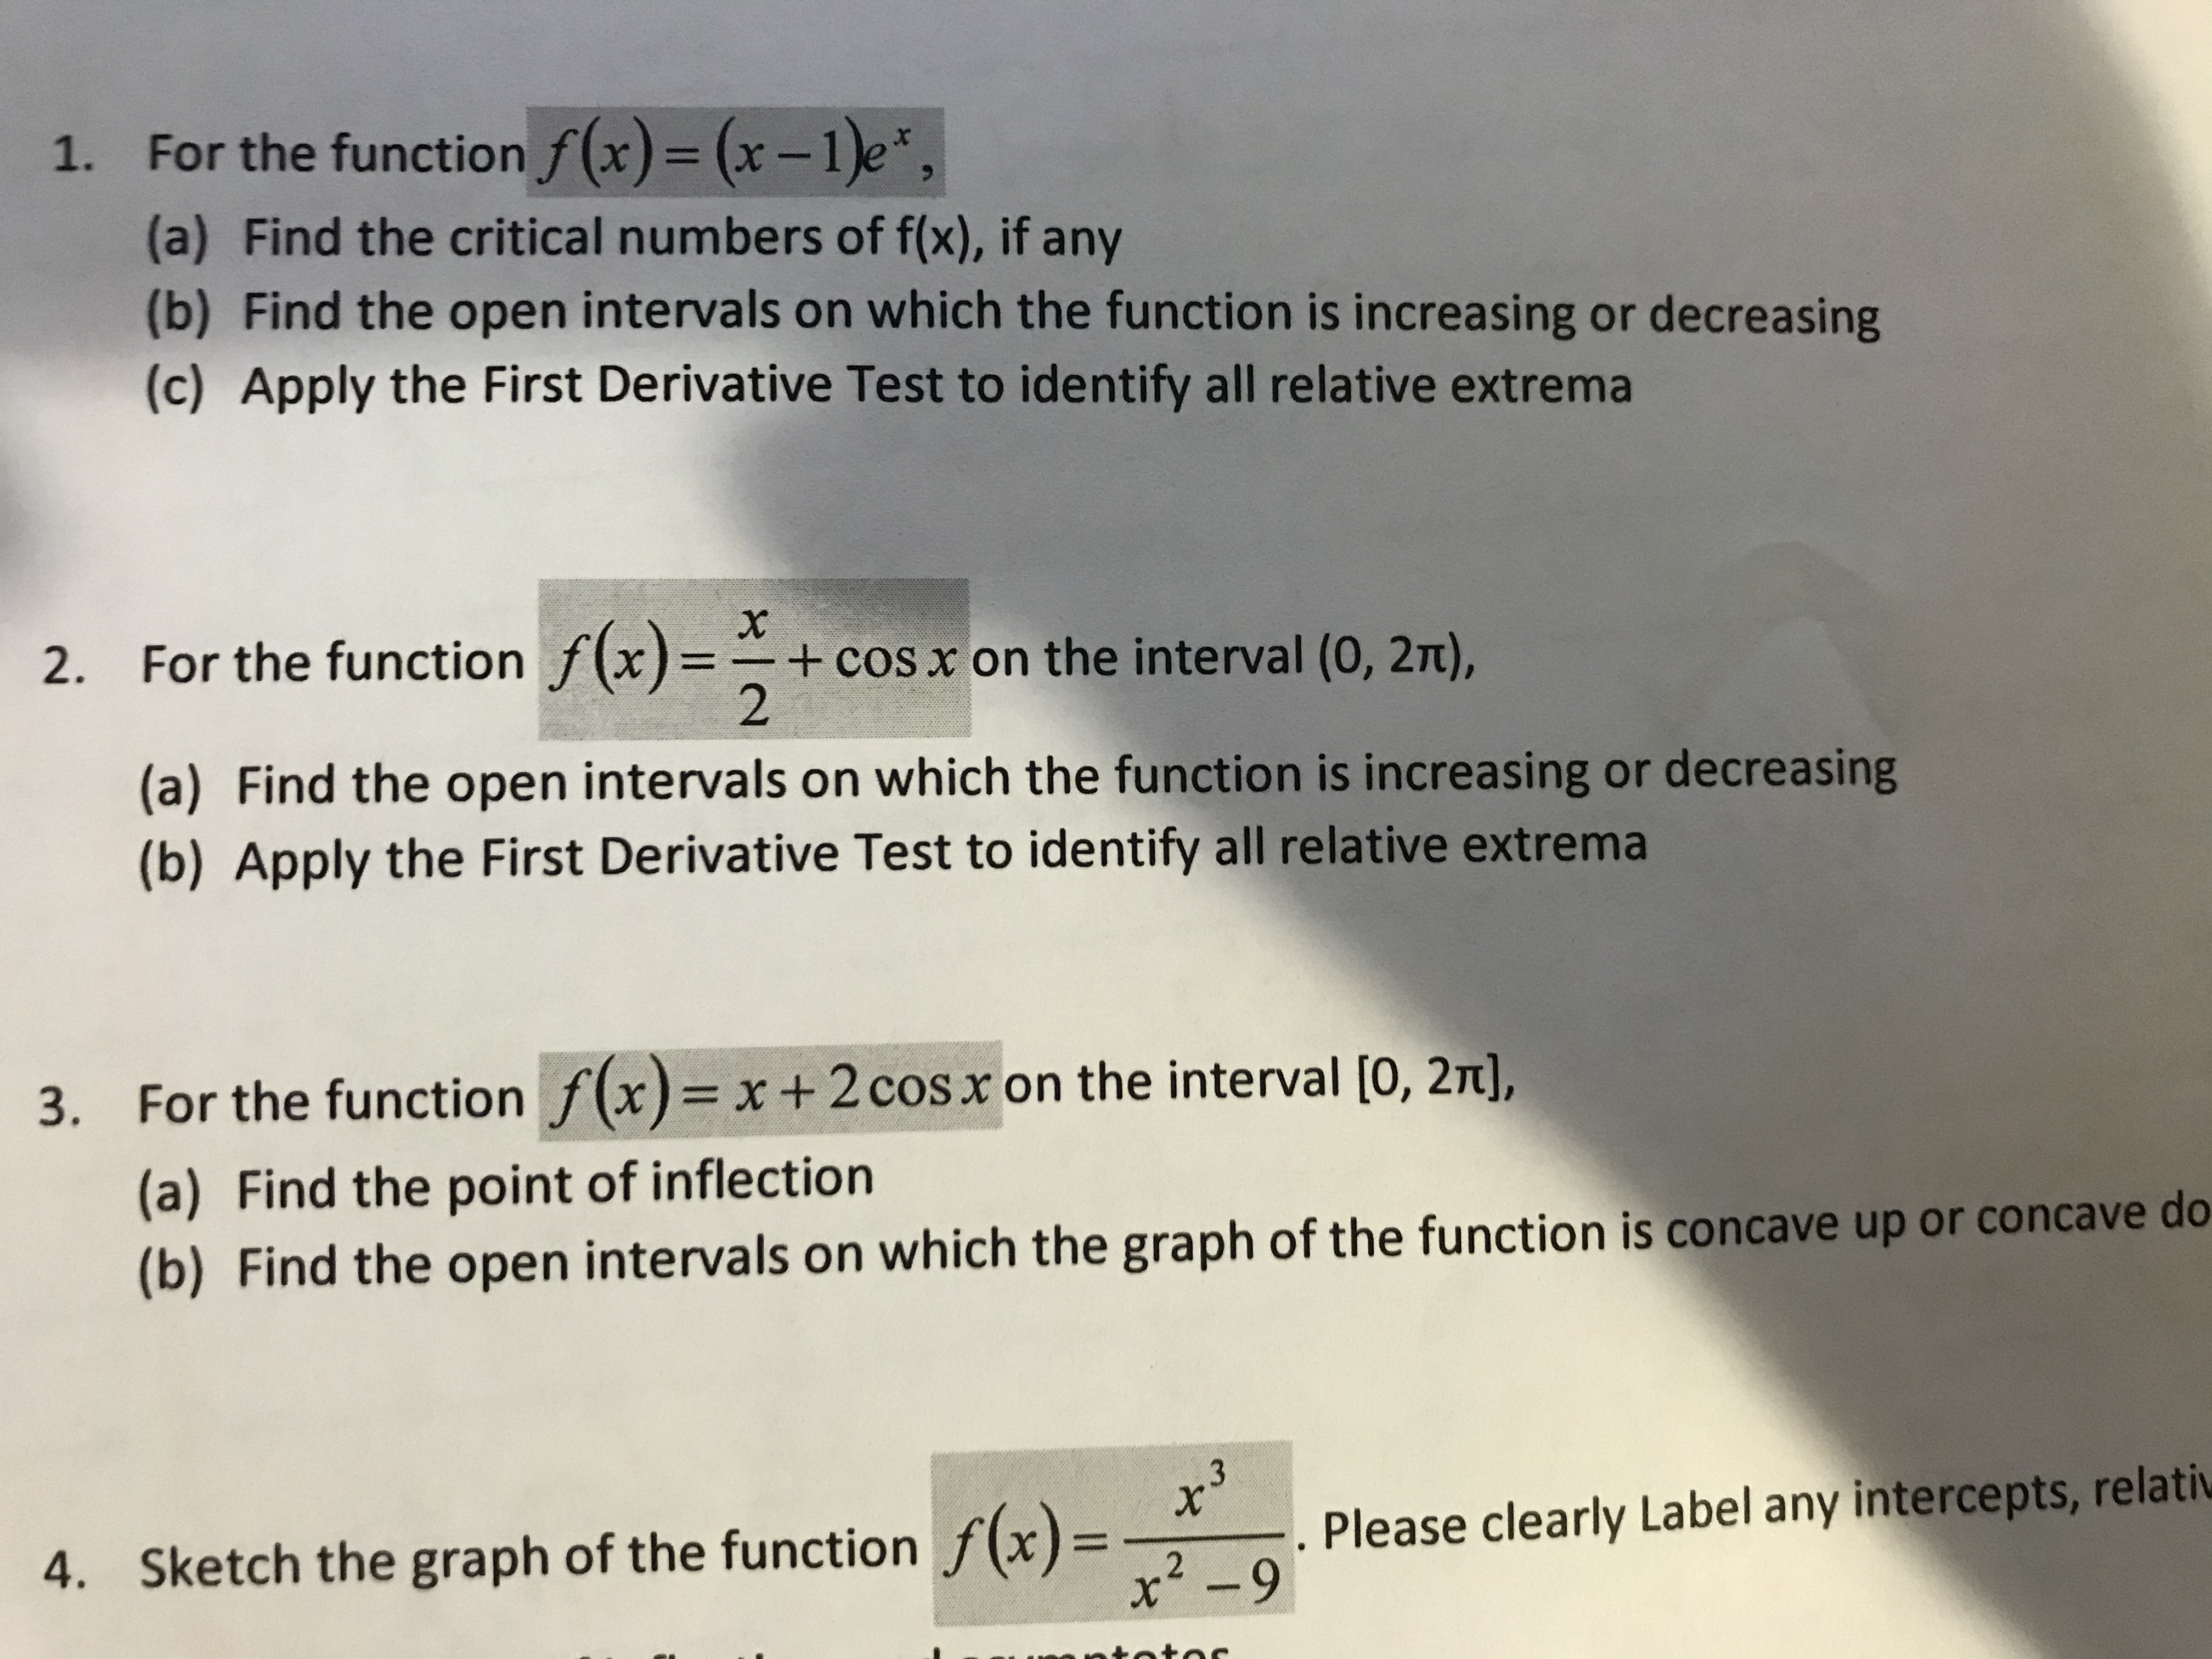 1. For the function f(x) = (x-1)e, (a) Find the critical numbers of f(x), if any (b) Find the open intervals on which the function is increasing or decreasing (c) Apply the First Derivative Test to identify all relative extrema 2. For the function f(x)= + cos x on the interval (0, 2t), 2 (a) Find the open intervals on which the function is increasing or decreasing (b) Apply the First Derivative Test to identify all relative extrema 3. For the function f(x) x+ 2 cos x on the interval [0, 2T], (a) Find the point of inflection (b) Find the open intervals on which the graph of the function is concave up or concave do 3 Sketch the graph of the function f(x) Please clearly Label any intercepts, relativ 4. x2-9